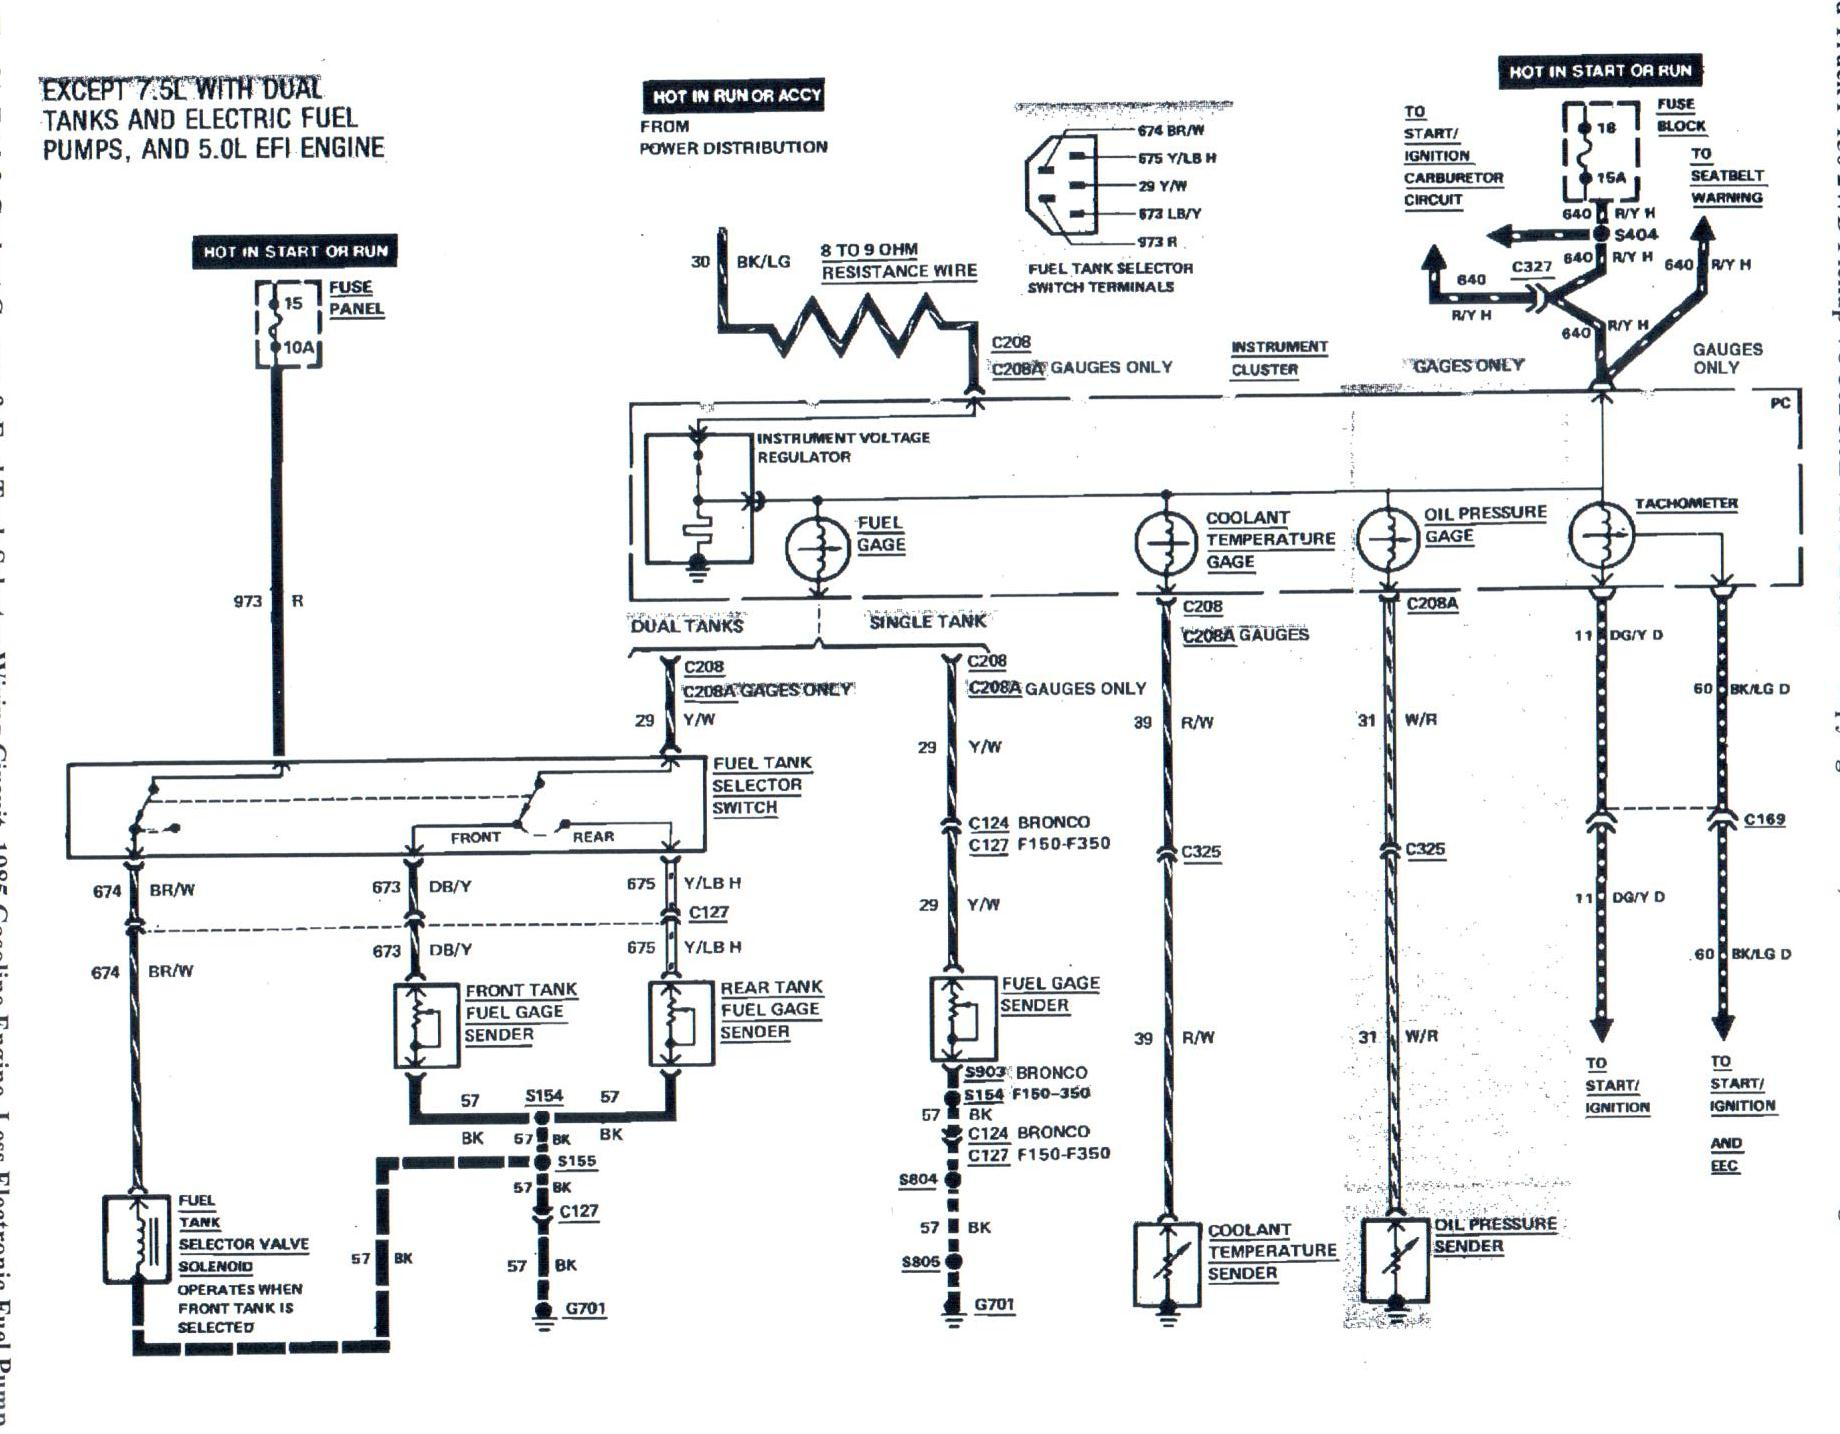 85 ford f 250 wiring diagram ford mirror wiring diagram, 1989 on 1985 Ford E350 Wiring Diagram for diagram, ford · 1985 f150 fuel problem please help!! fordforumsonline com ford f wiring at 85 Ford F150 Wiring Diagram